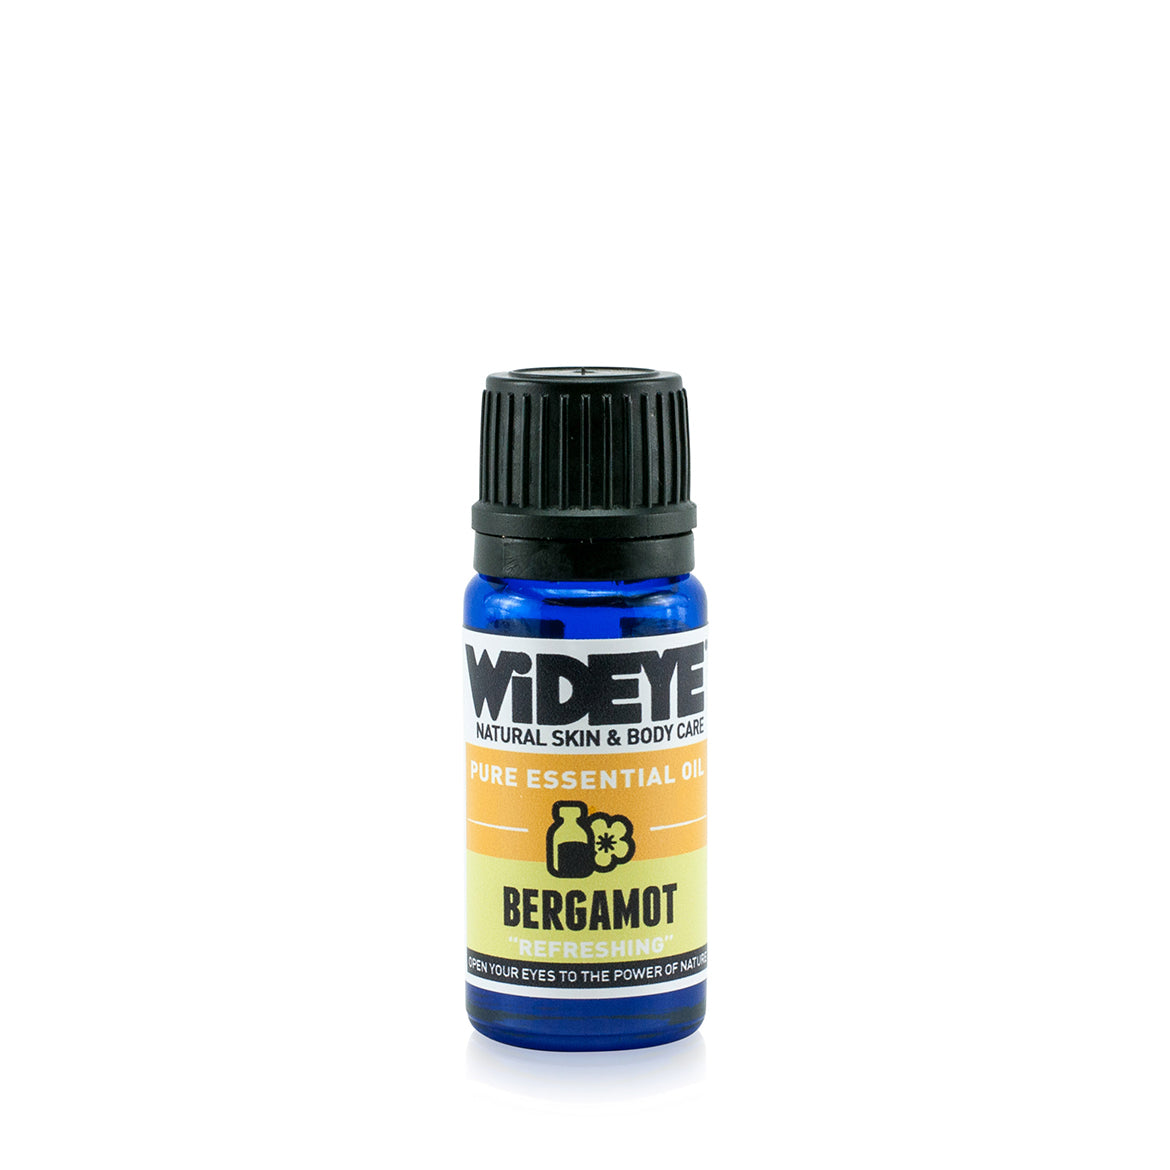 Natural aromatherapy Bergamot essential oil in glass bottle by WiDEYE